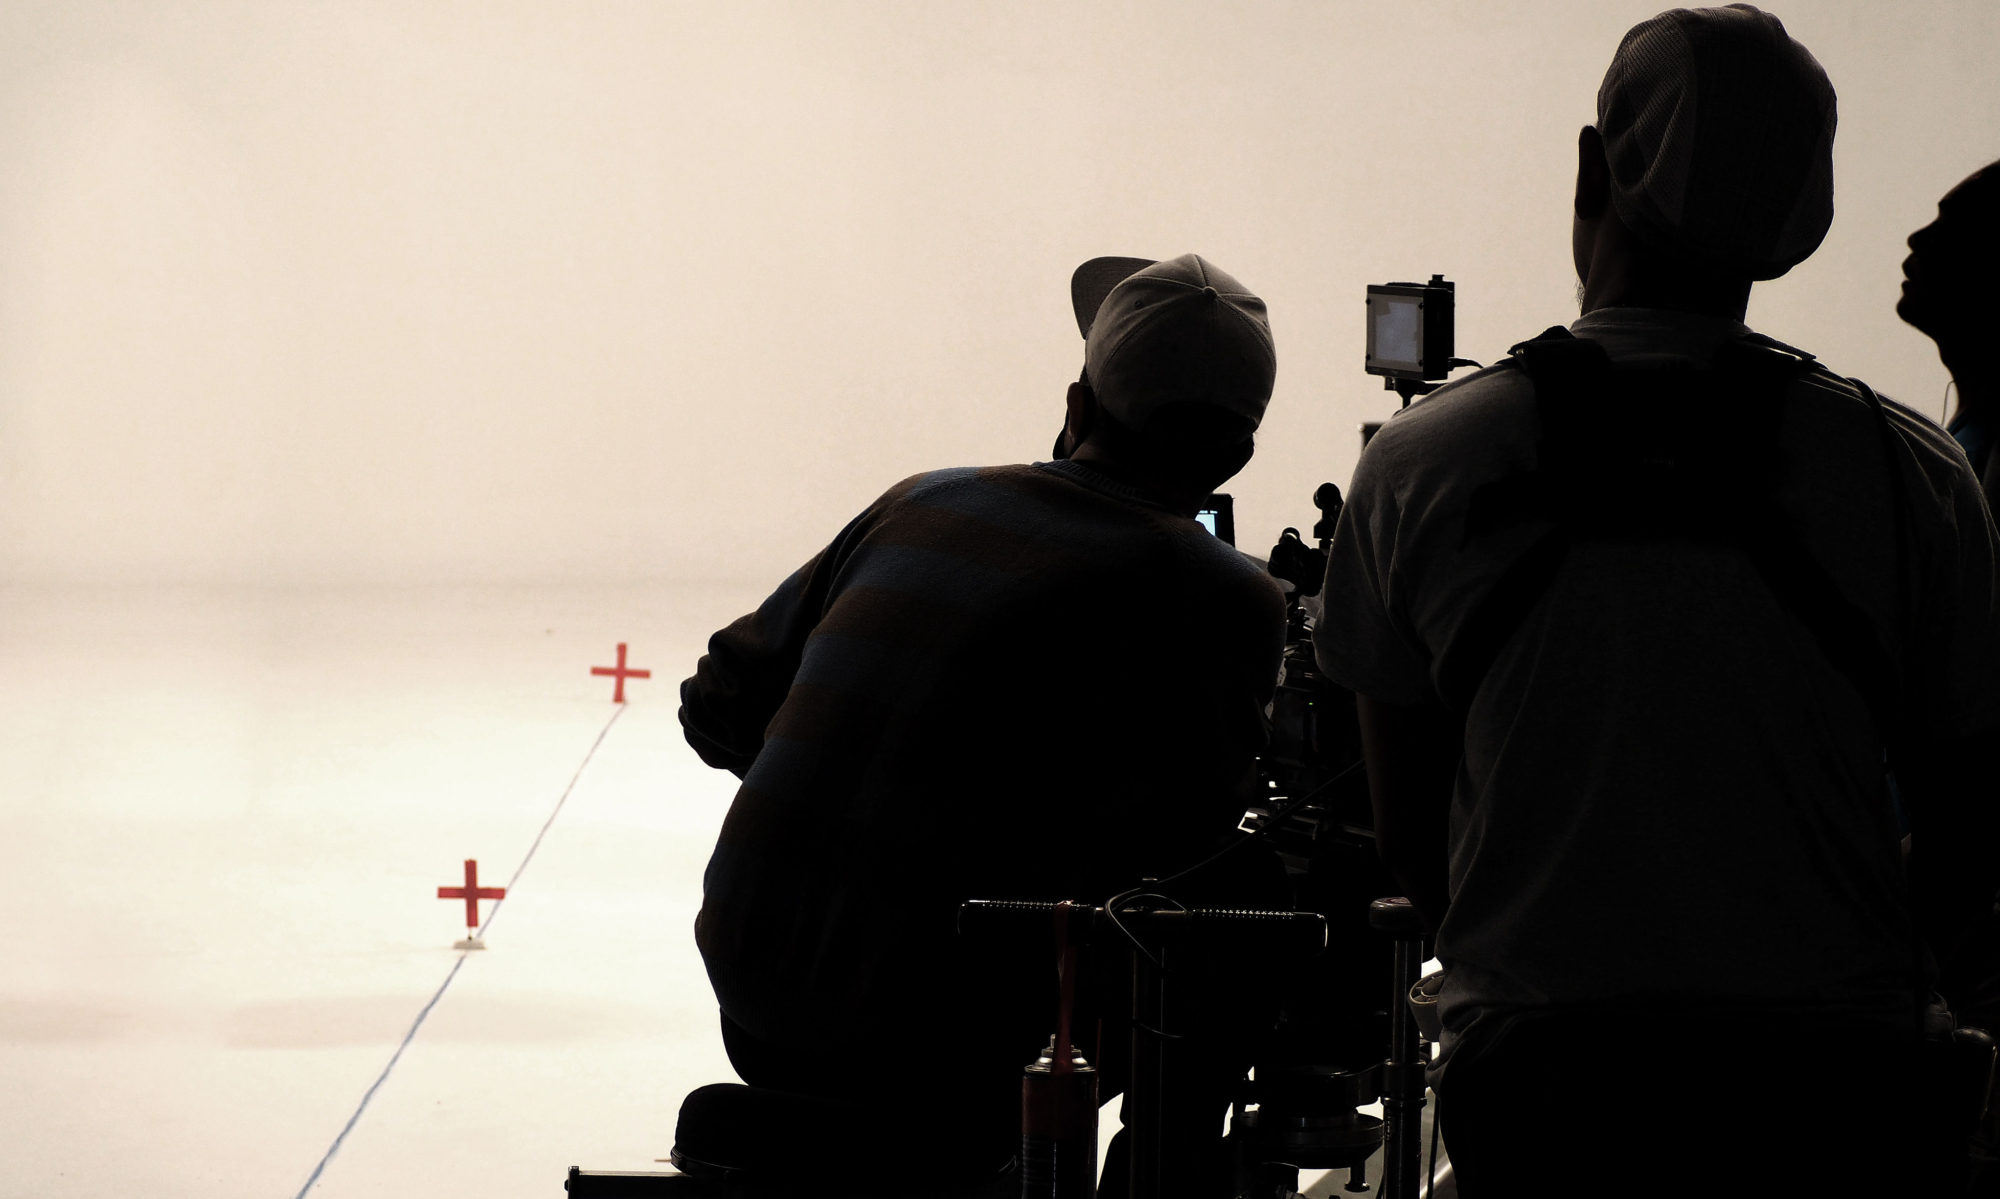 71502840 - behind the scenes or making of film in the studio and silhouette of camera man.